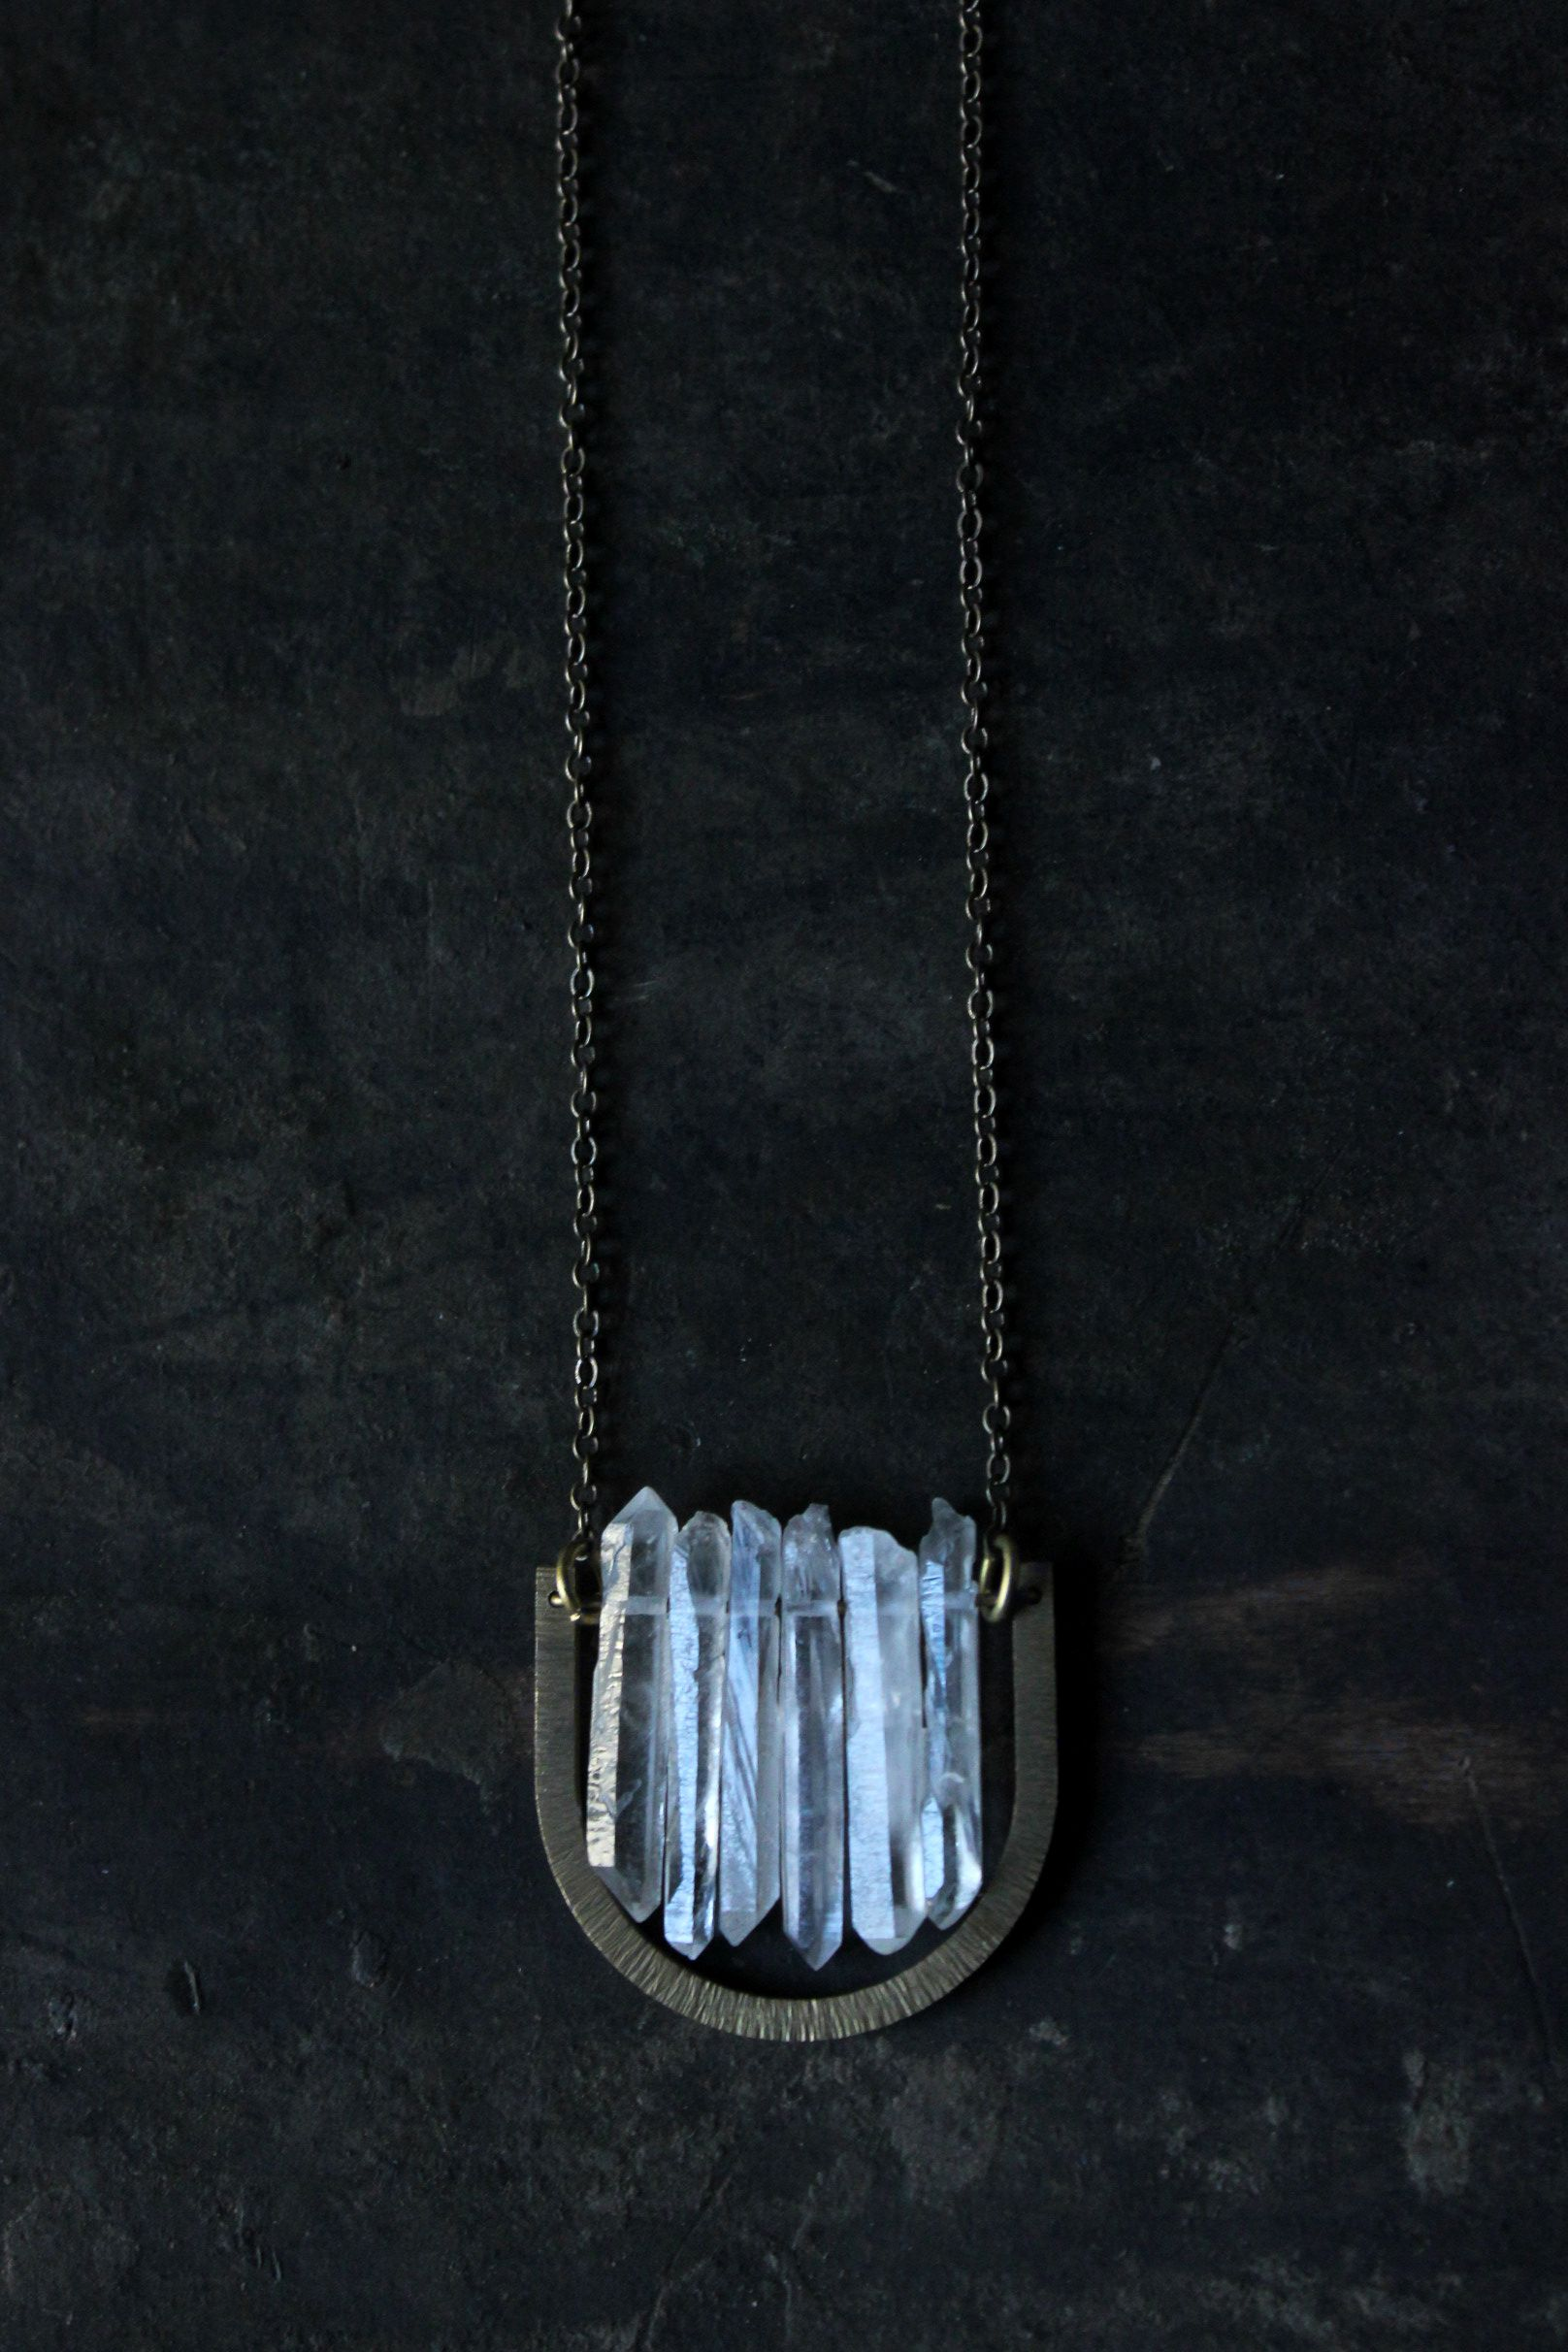 quartz crystal etsy by exploresleeprepeat s necklace clear pin and on gold